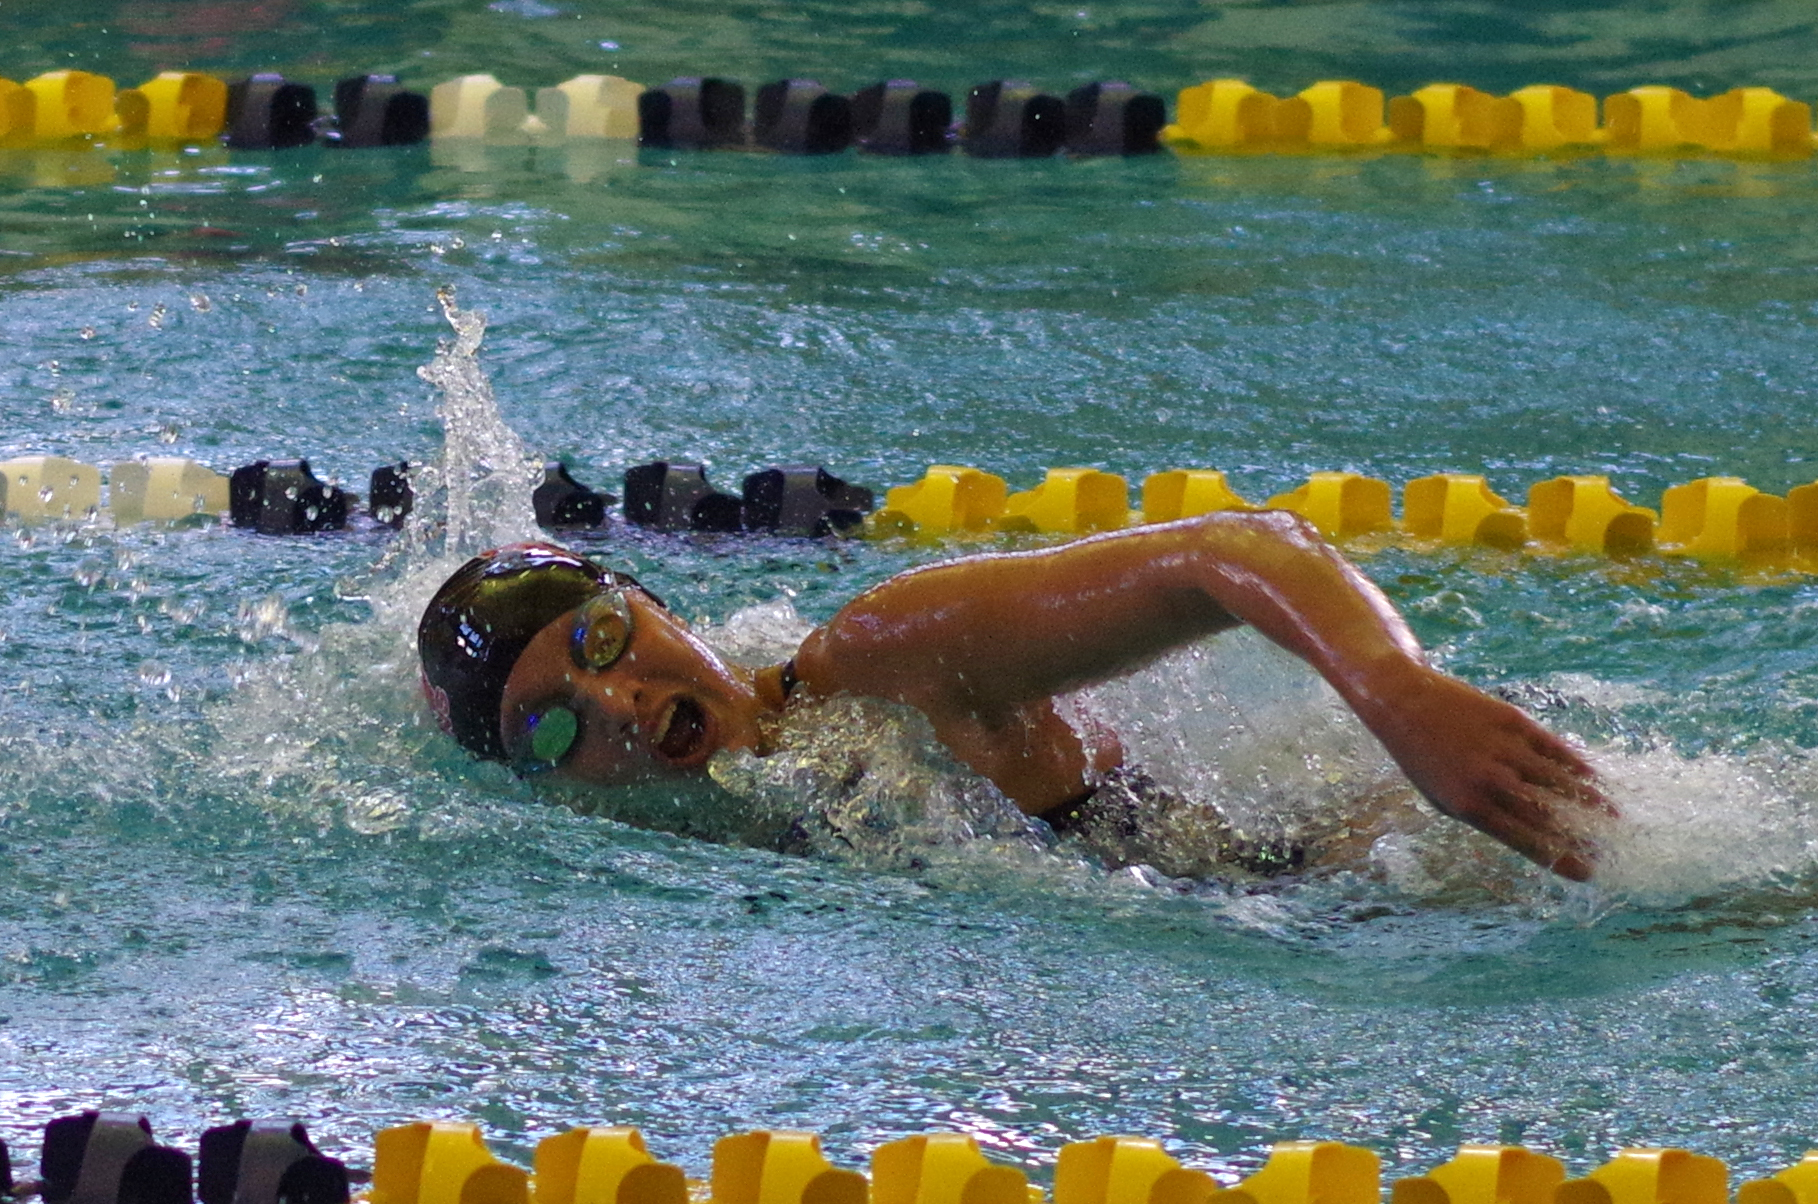 Danielle Carlson swims in the 200-yard freestyle. (Photo by Larry Austin)